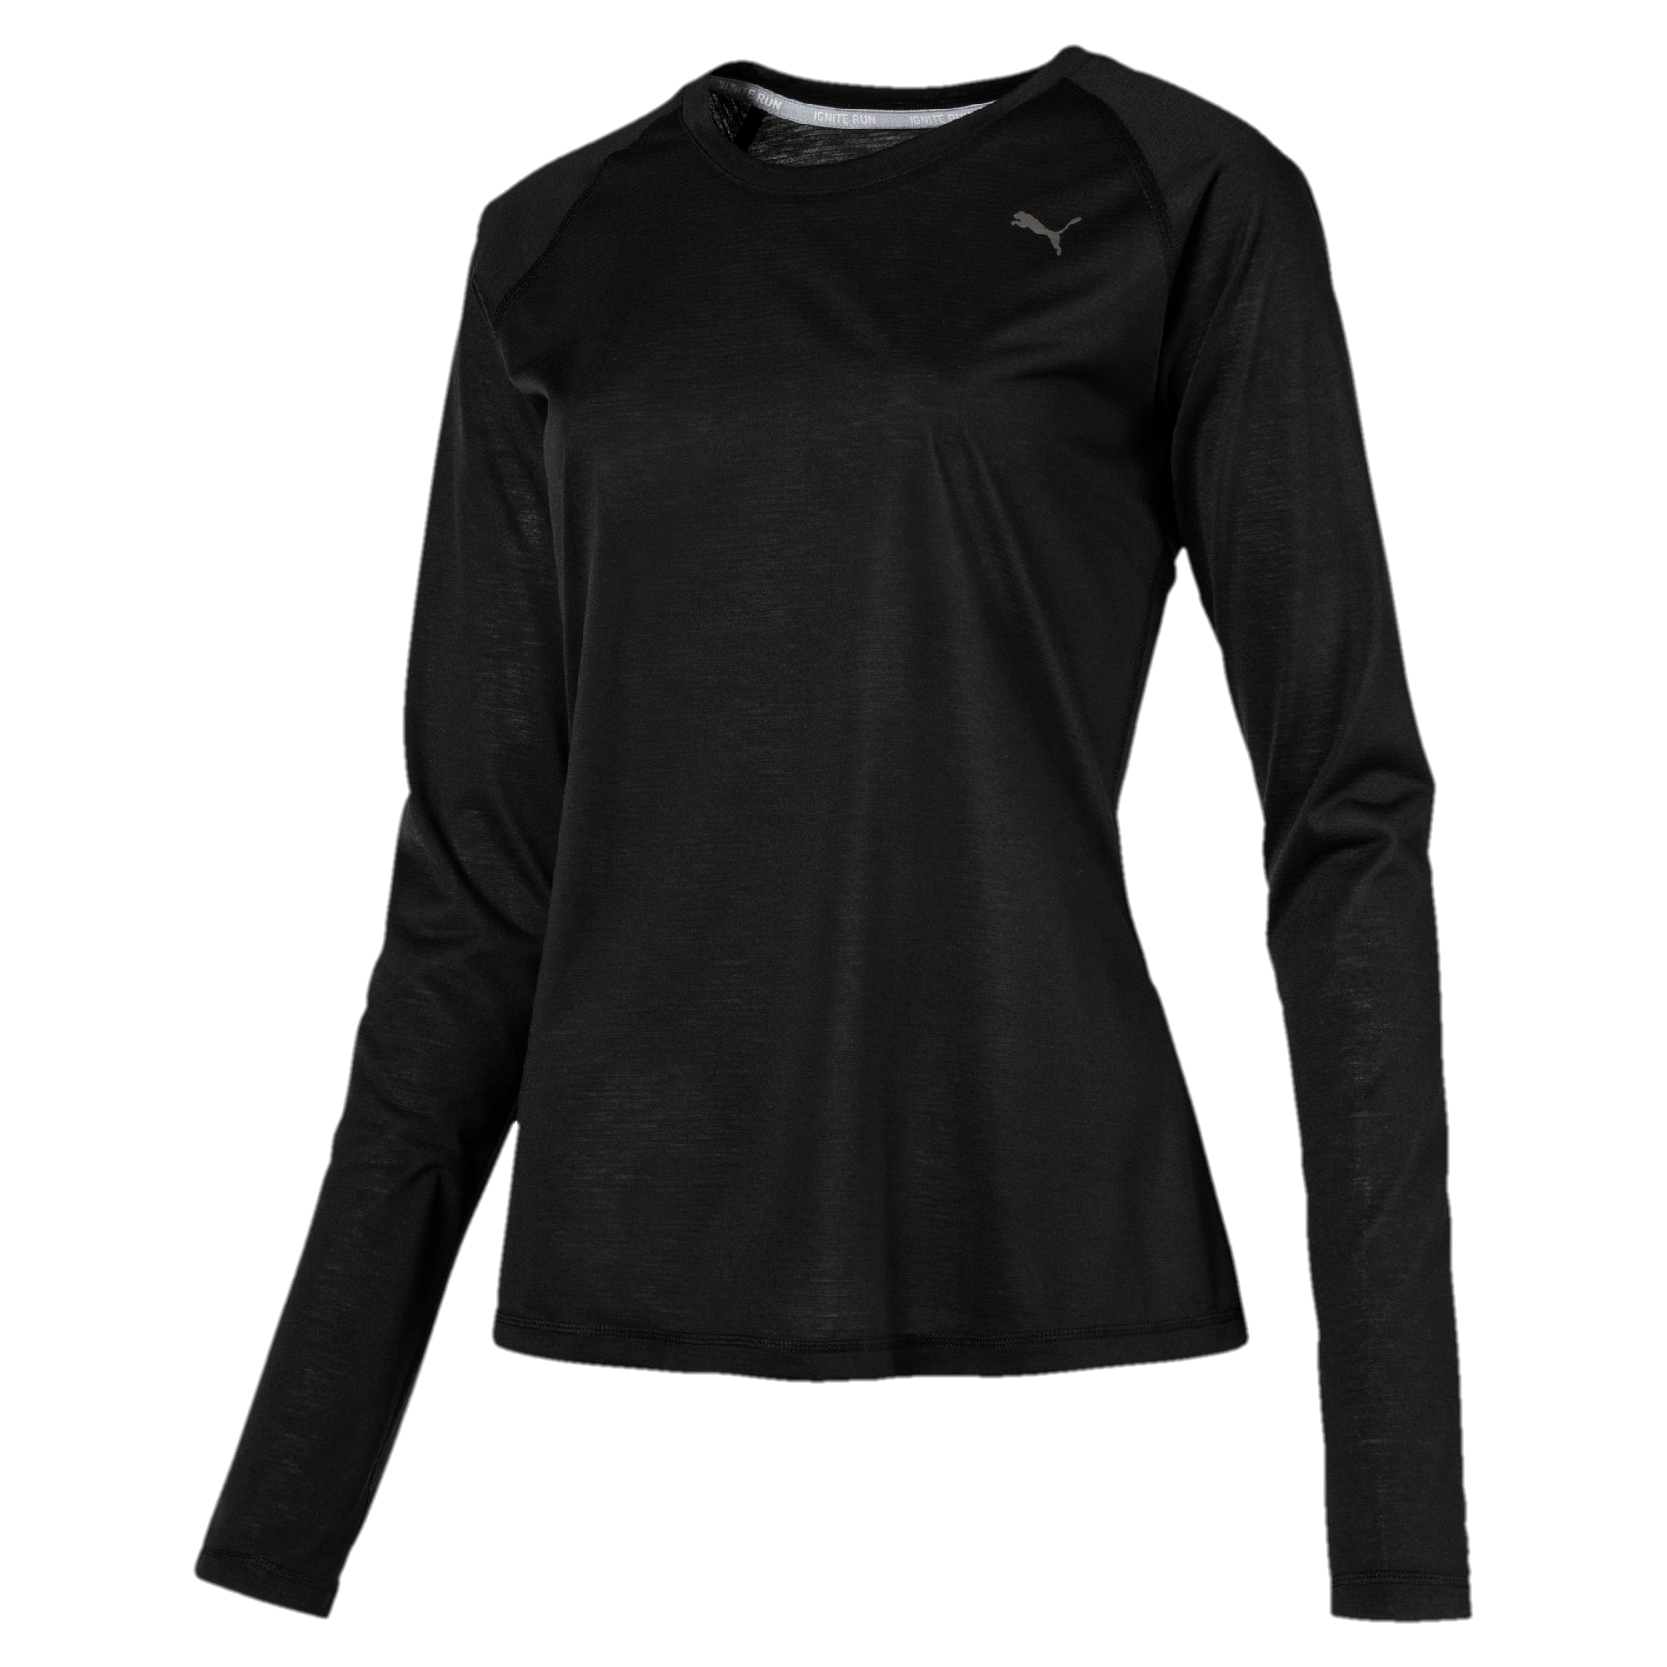 Puma Women's Long Sleeve Run Tee | Jerseys